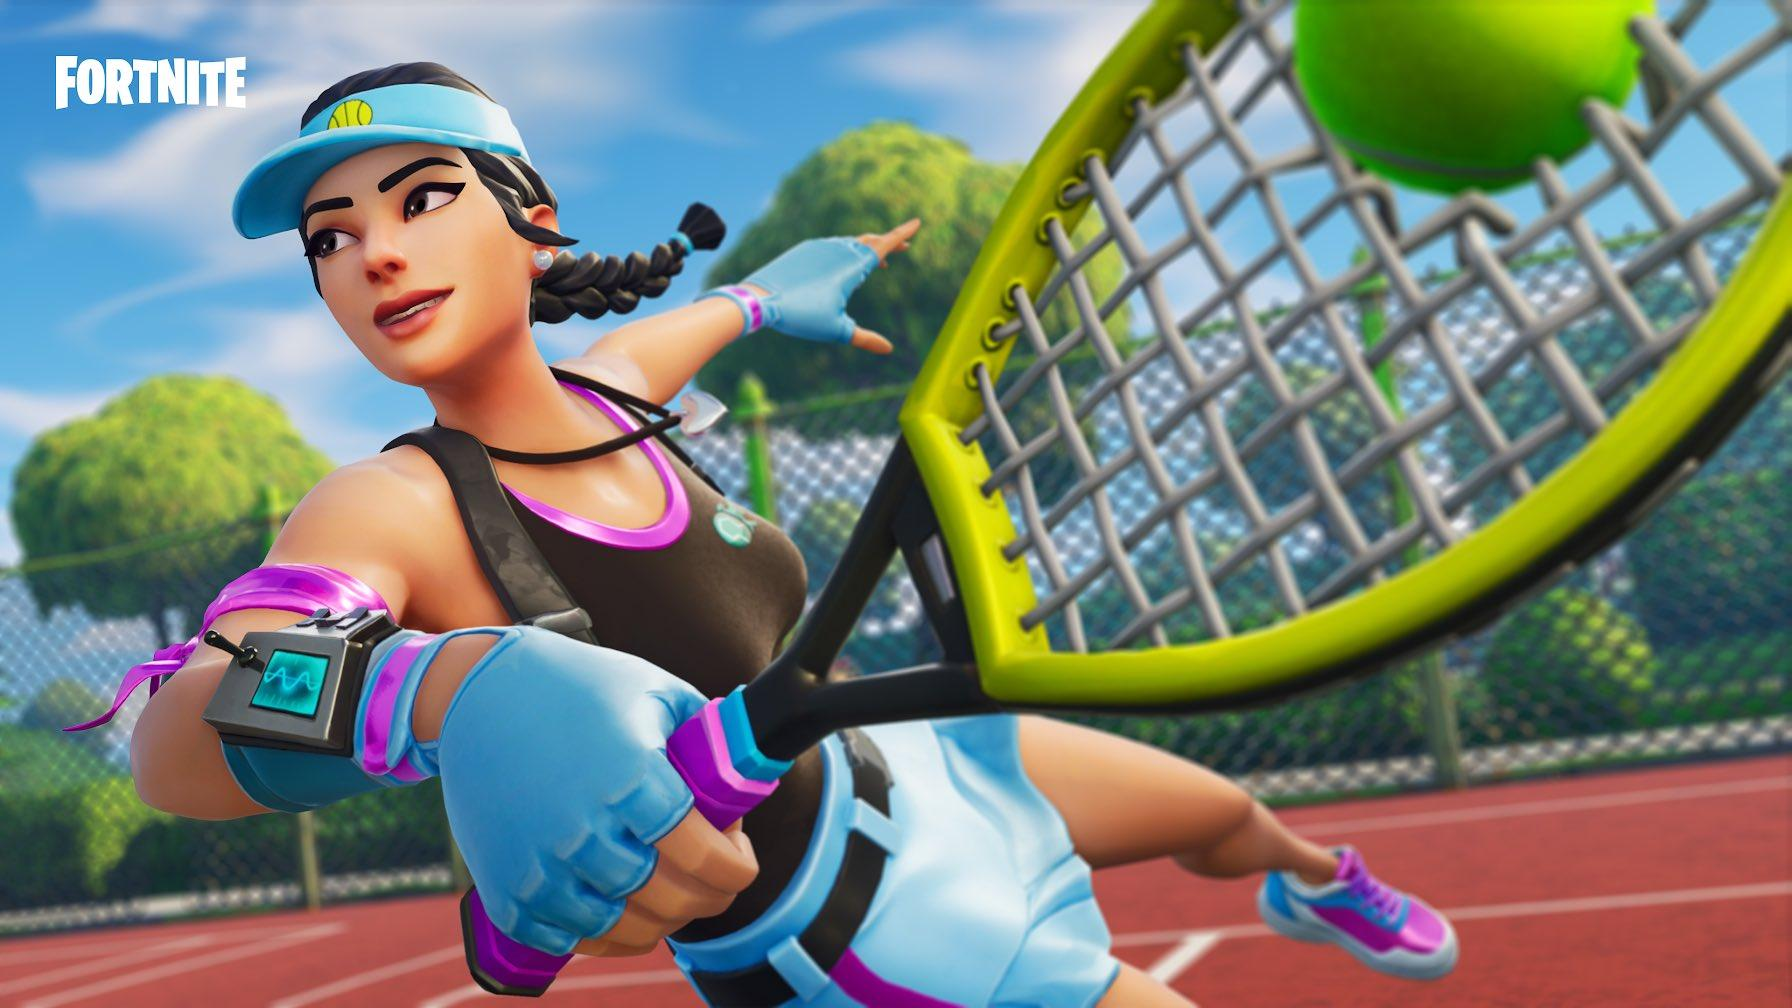 Fortnite Wallpapers, Fortnite Loading Screens and more